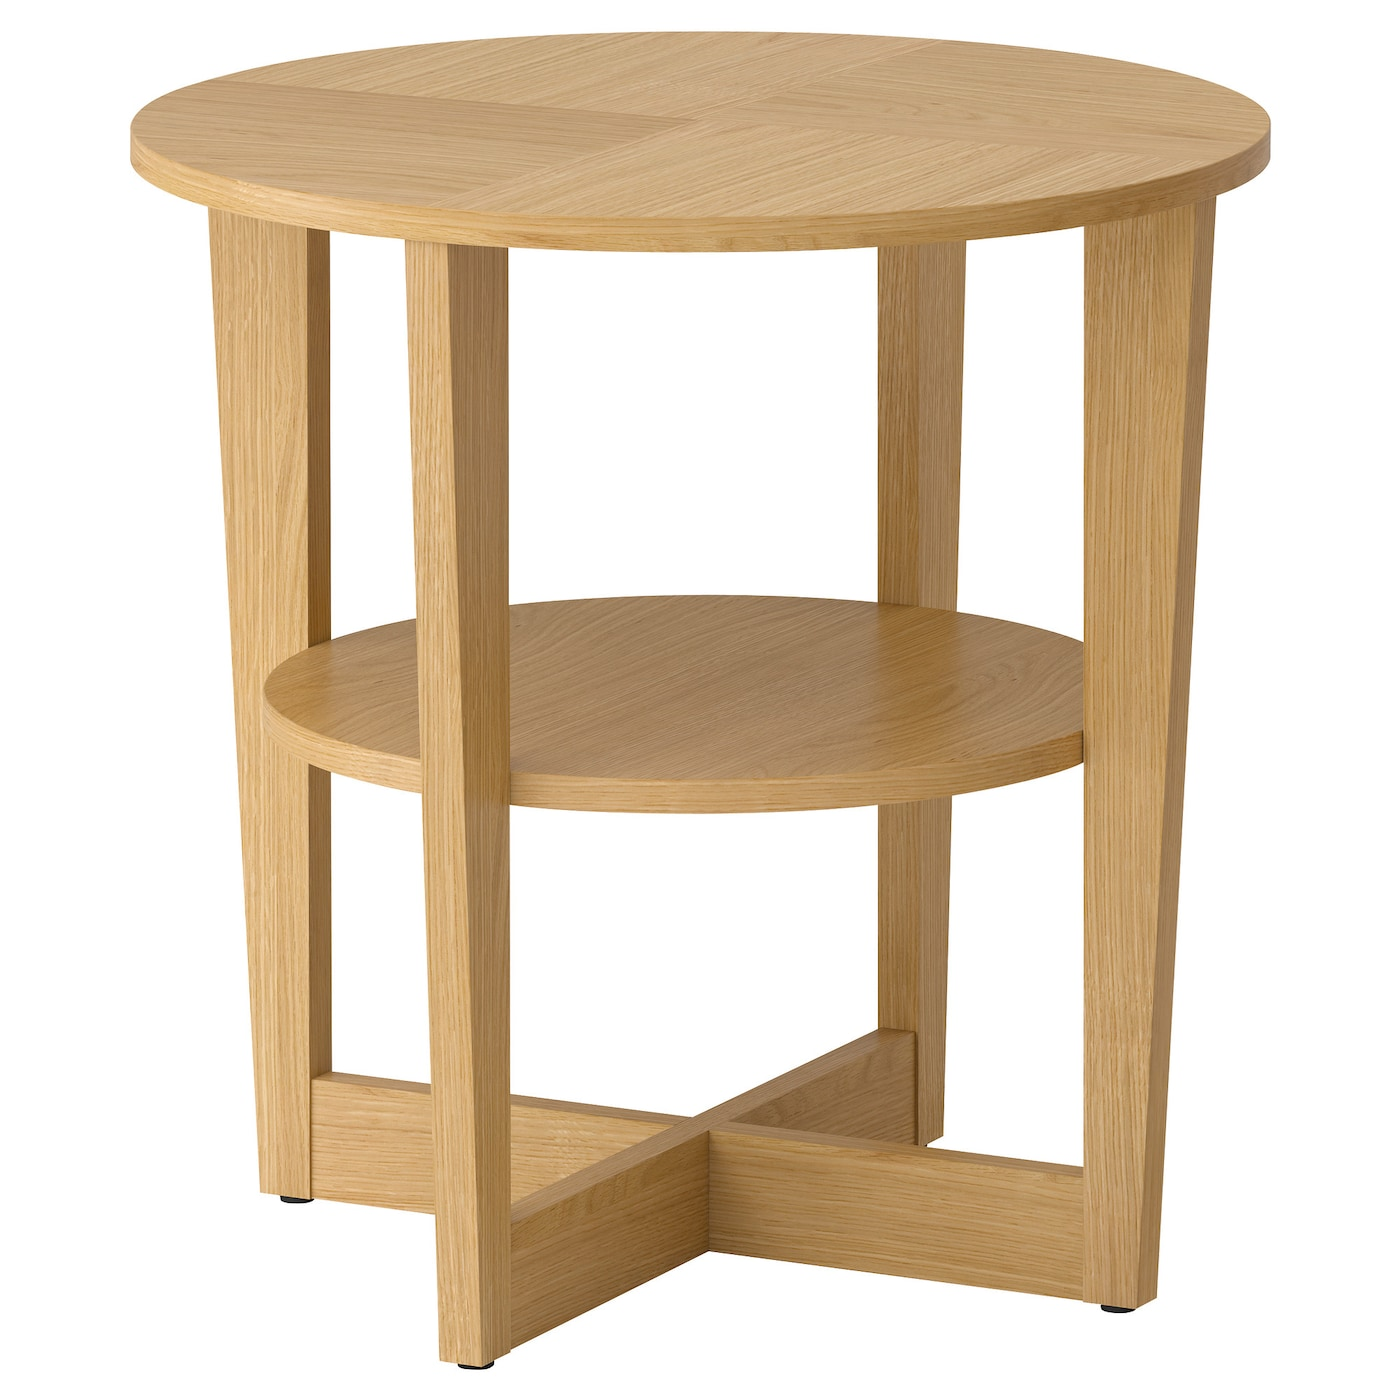 IKEA VEJMON side table The veneered surface is durable, stain resistant and  easy to keep